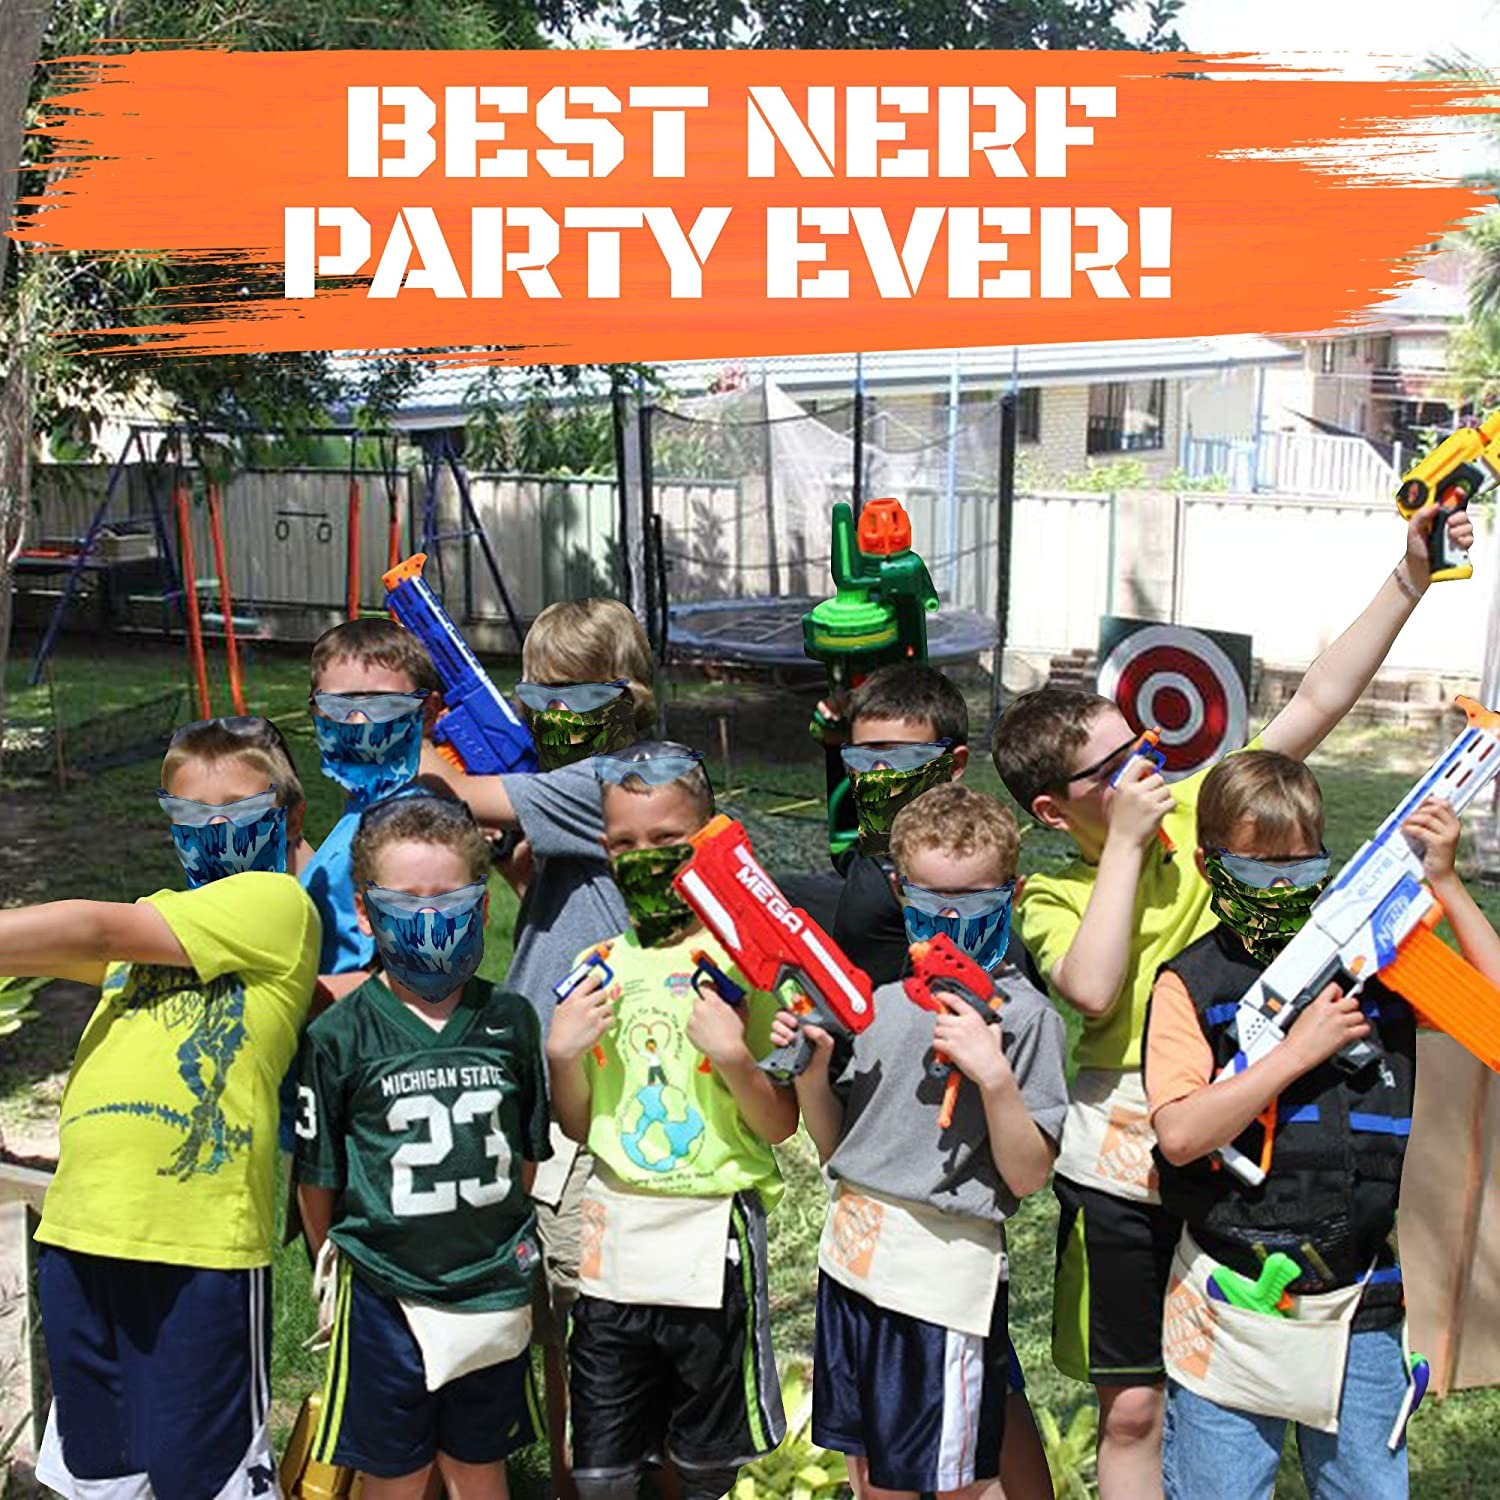 Accessories. Nerf Birthday Party Favors 12 Kids Wishery Nerf Party Supplies Compatible with Nerf Guns